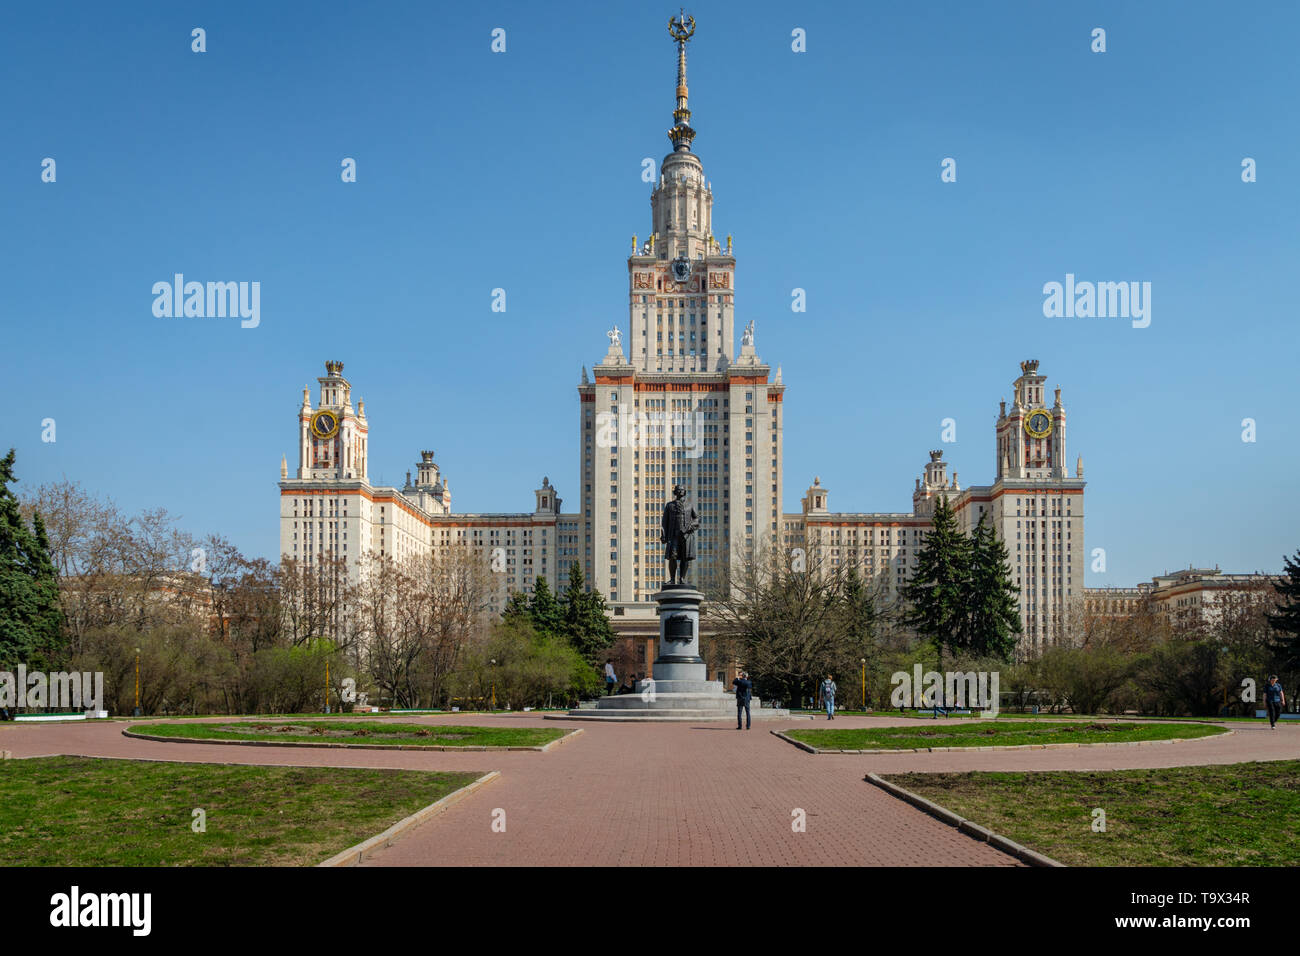 Moscow, Russia - April 2019: Main building of Moscow State University, Moscow, Russia. It is the highest-ranking Russian educational institution. - Stock Image